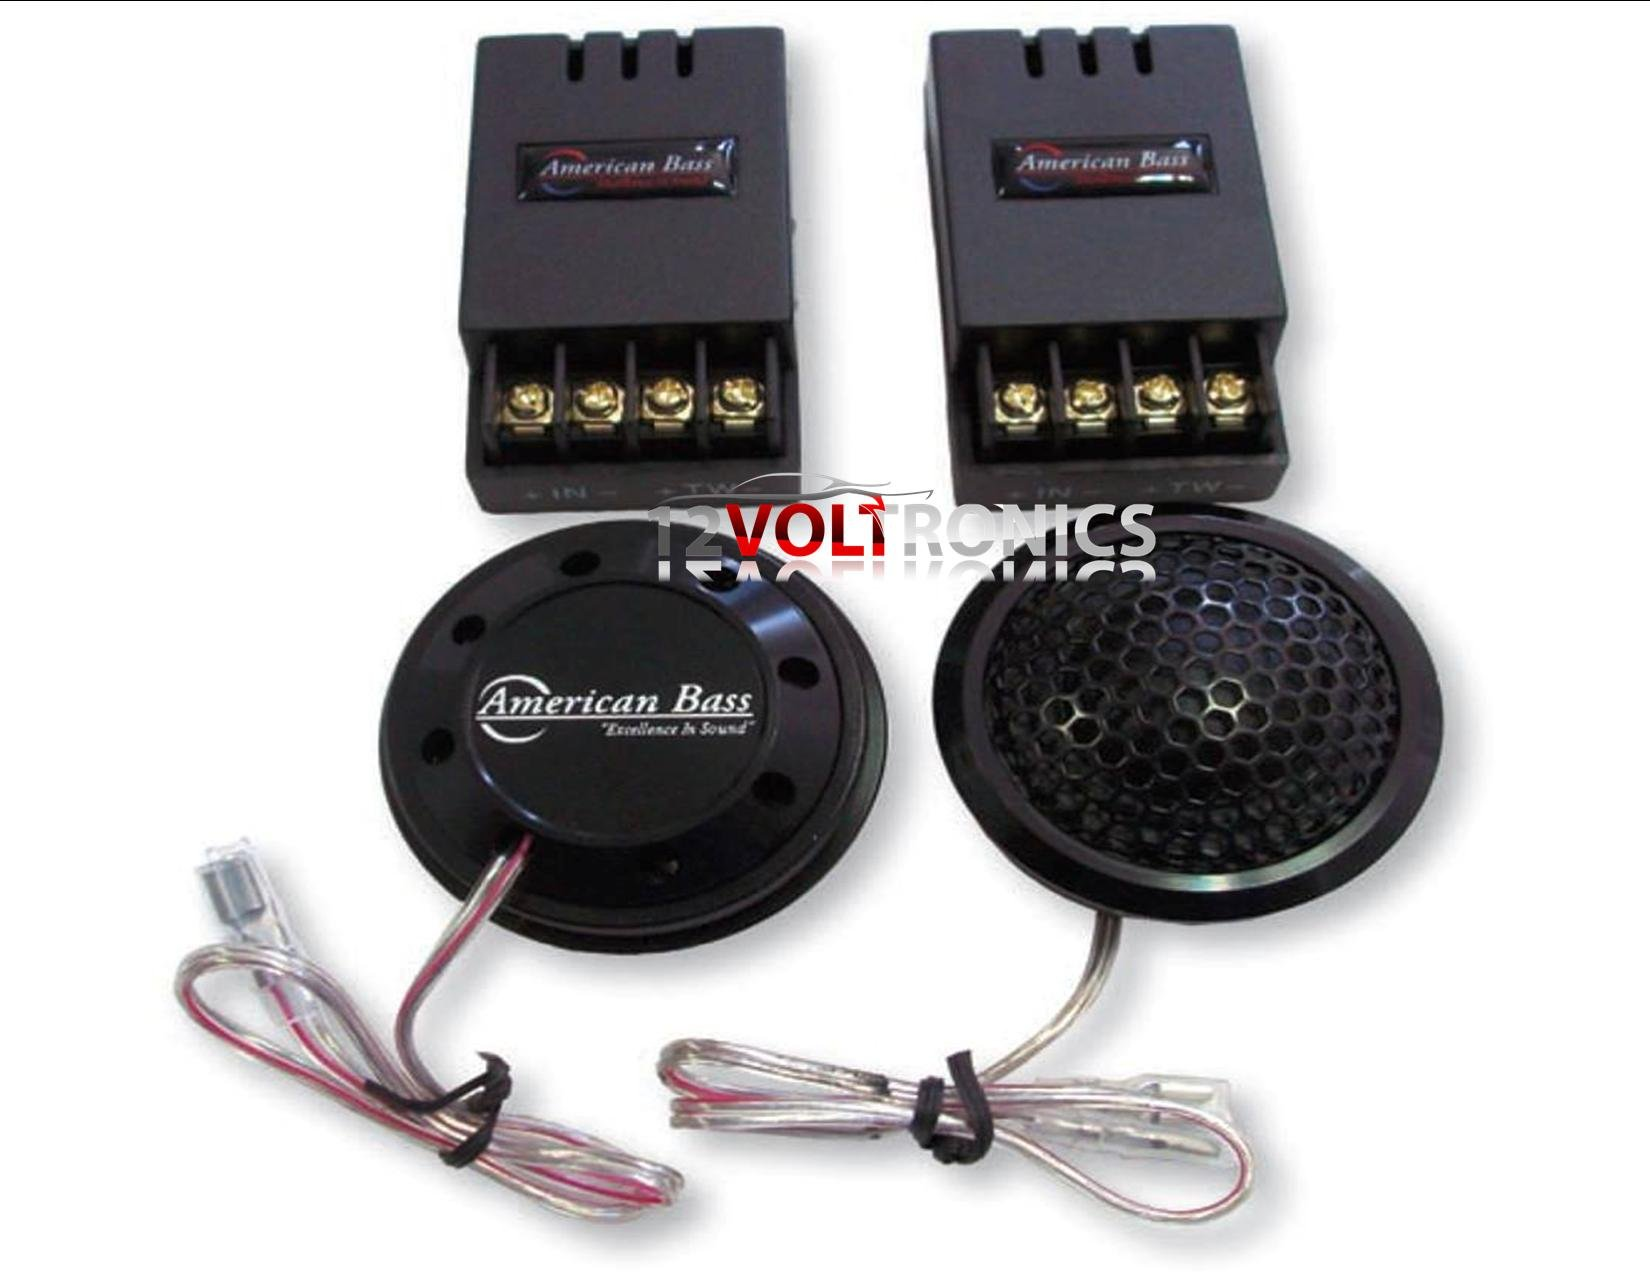 AMERICAN BASS SYMPHONY2.5 TWEETER 1 1/4'' 160W 3 WAY SURFACE ANGLE OR FLUSH MOUNT SILK DOME & PASSIVE XOVER